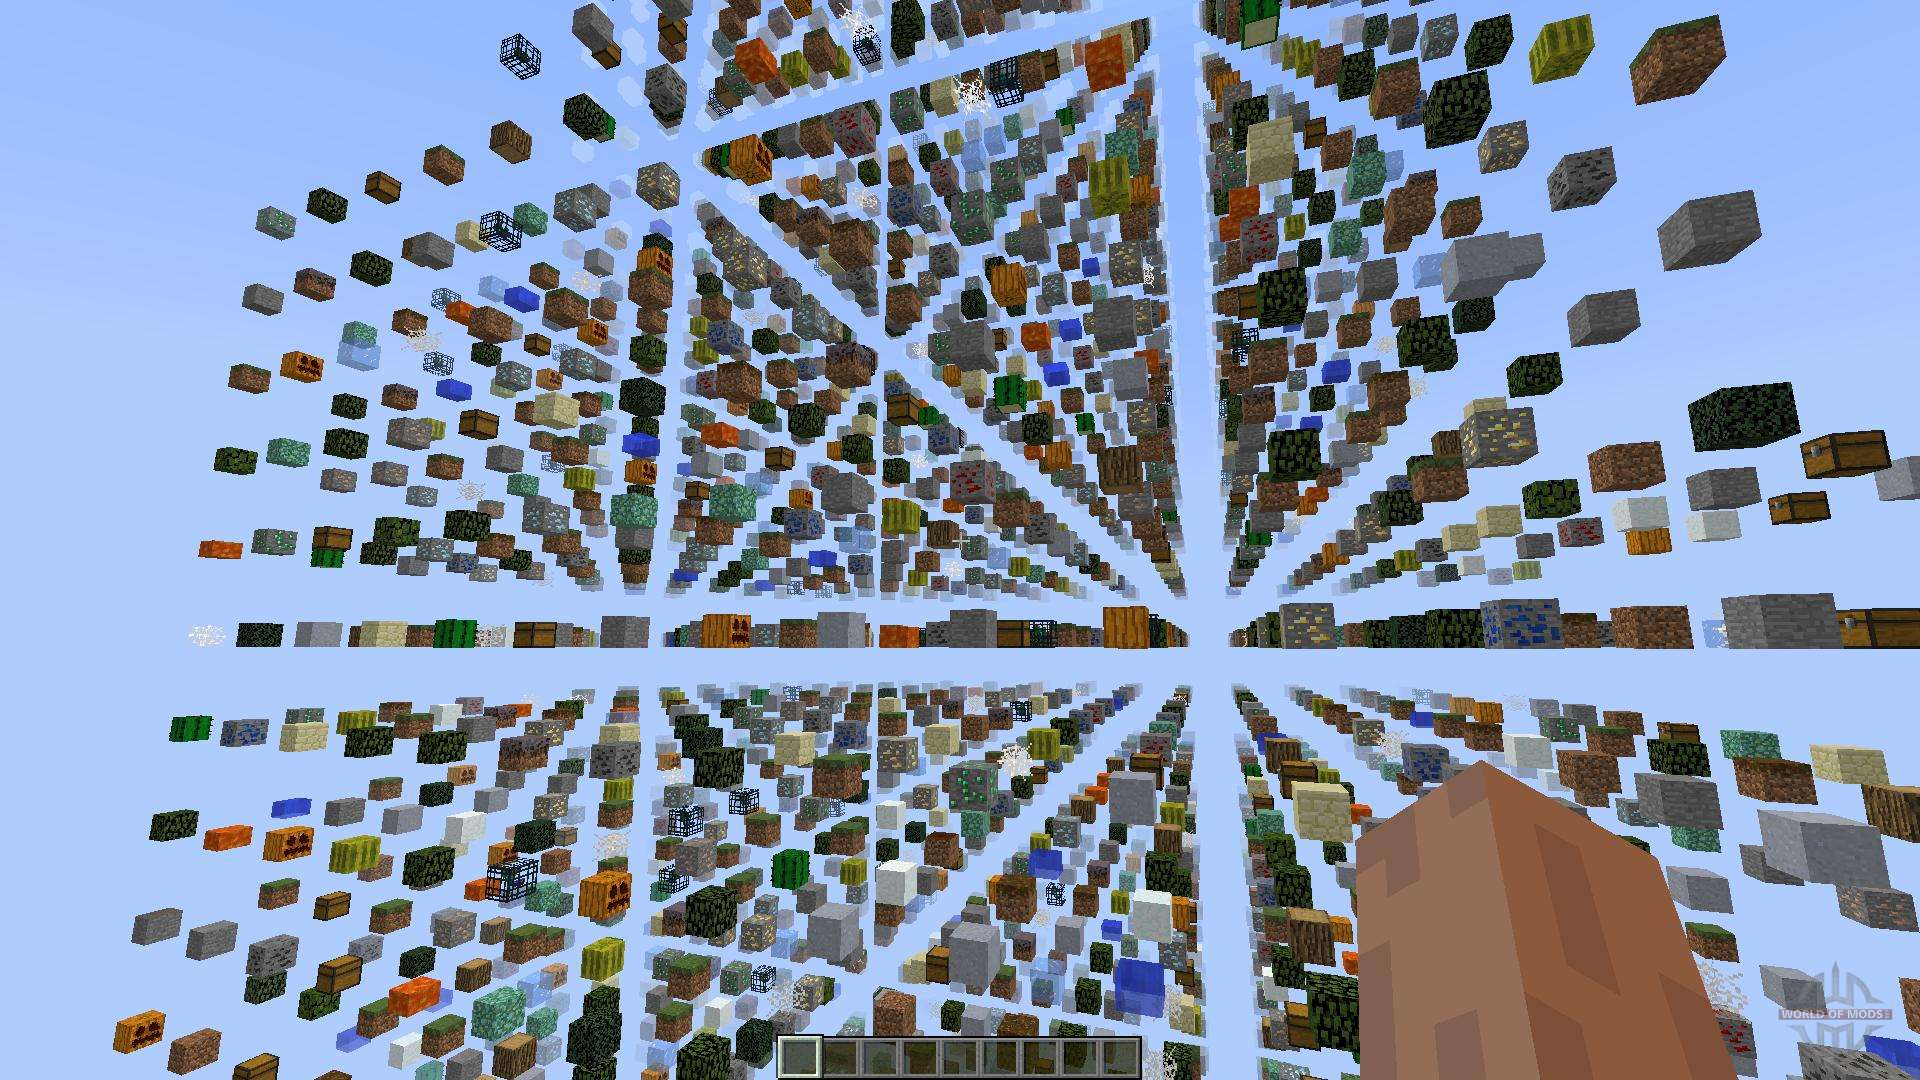 minecraft pc skygrid map download